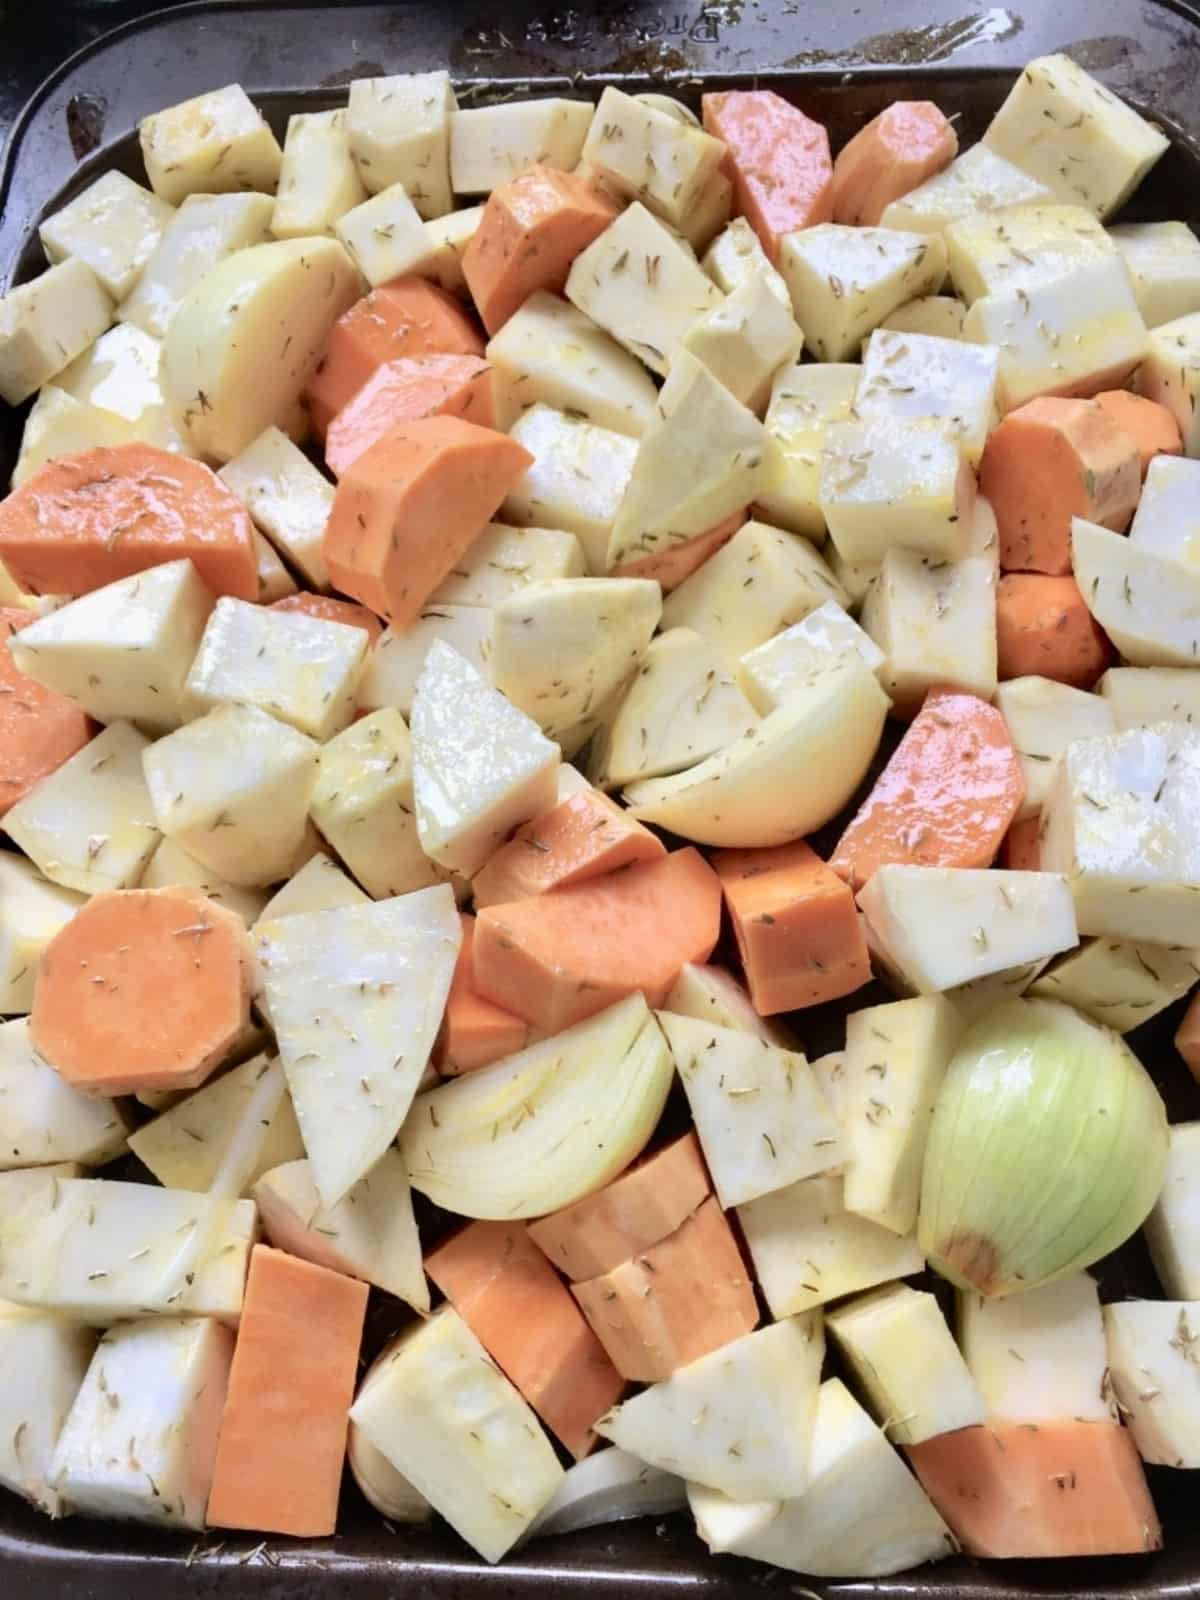 Vegetable chunks on a baking tray.